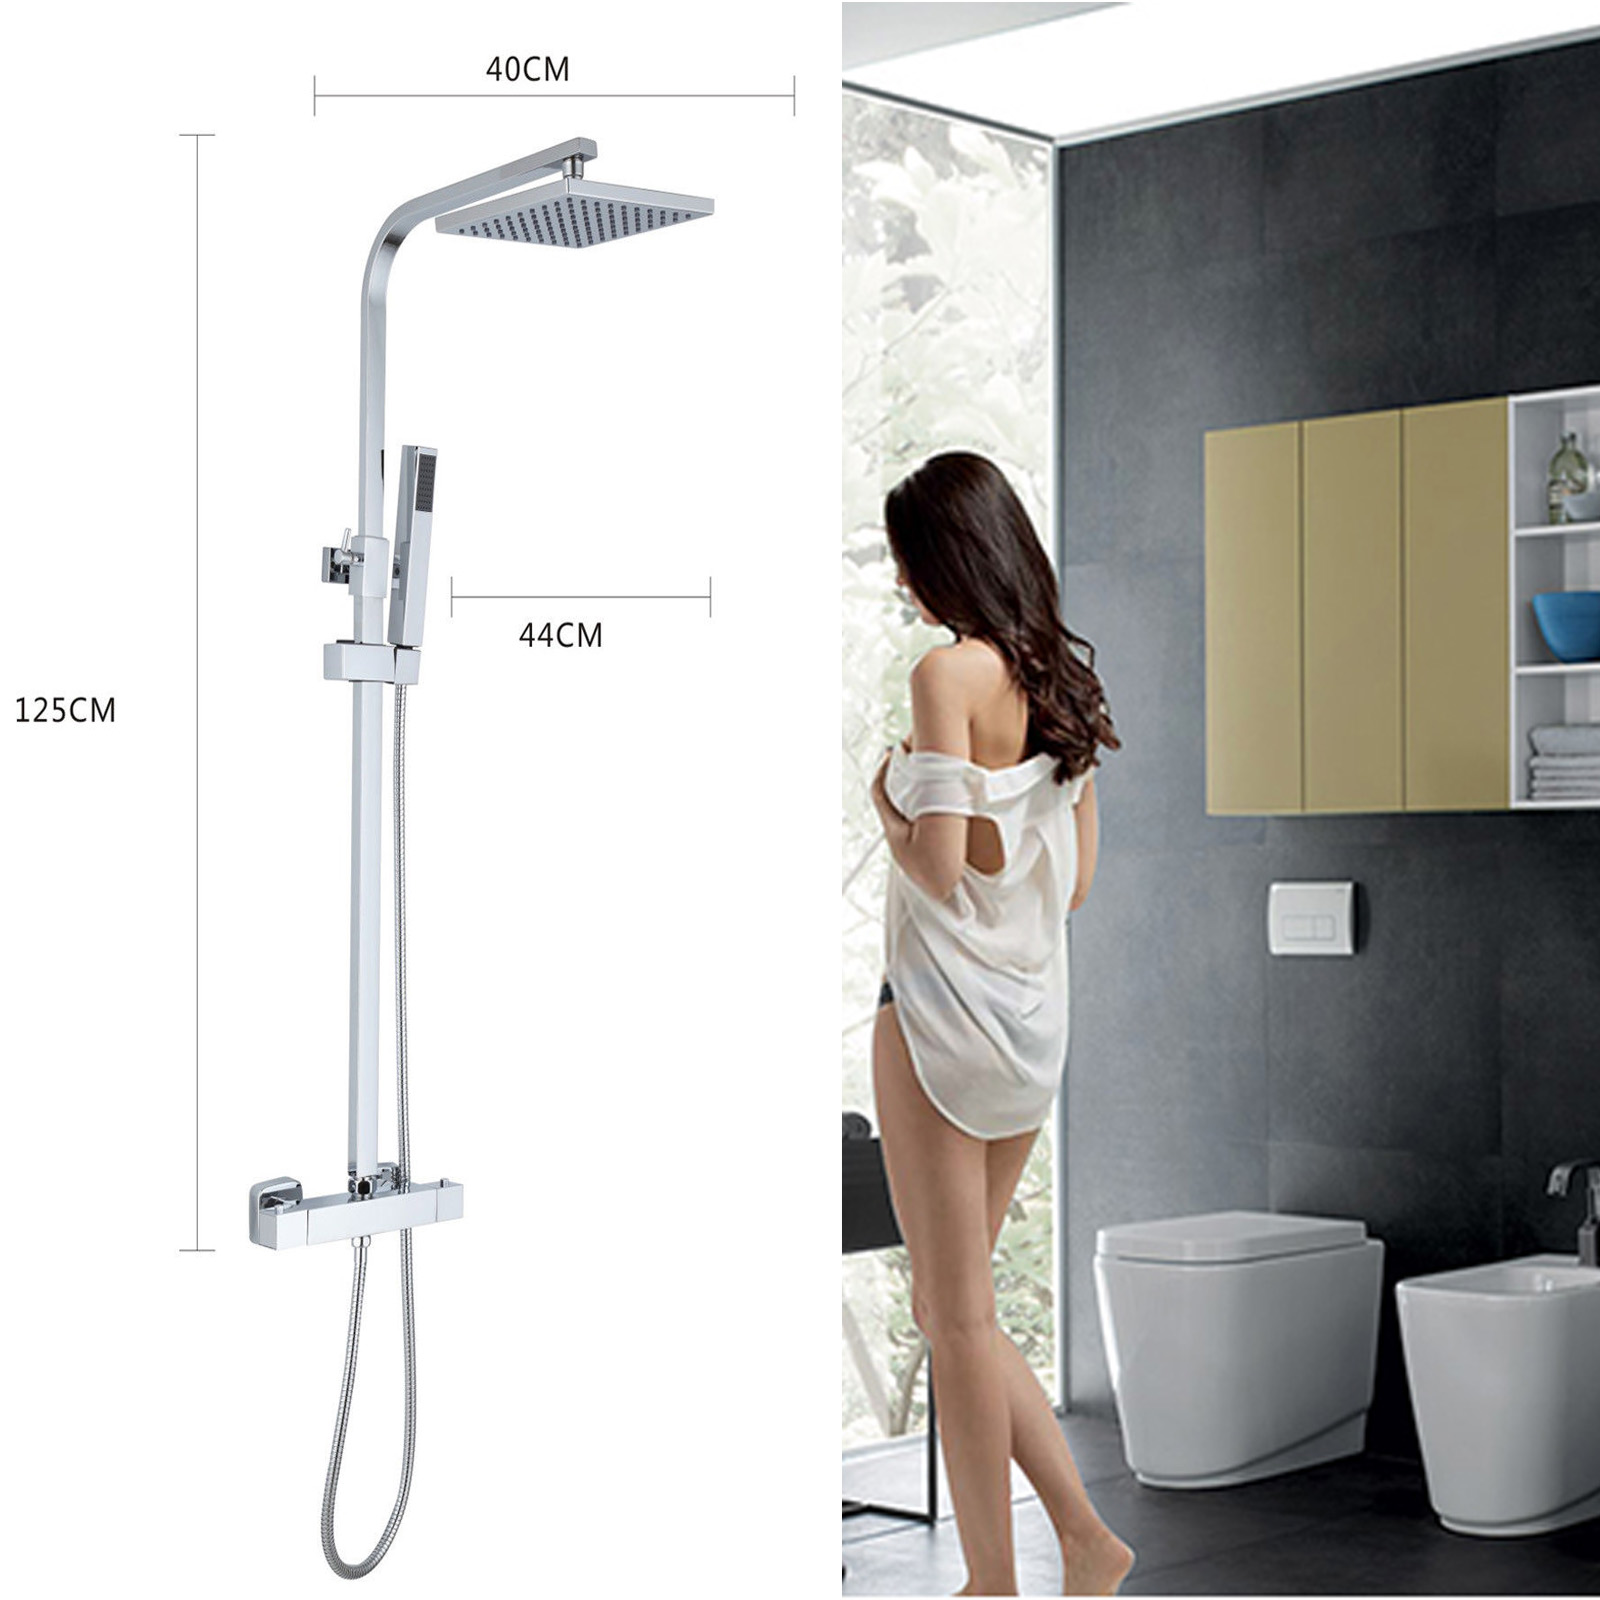 Thermostatic Surface Mounted Mixer Shower Valve Set With Adjustable